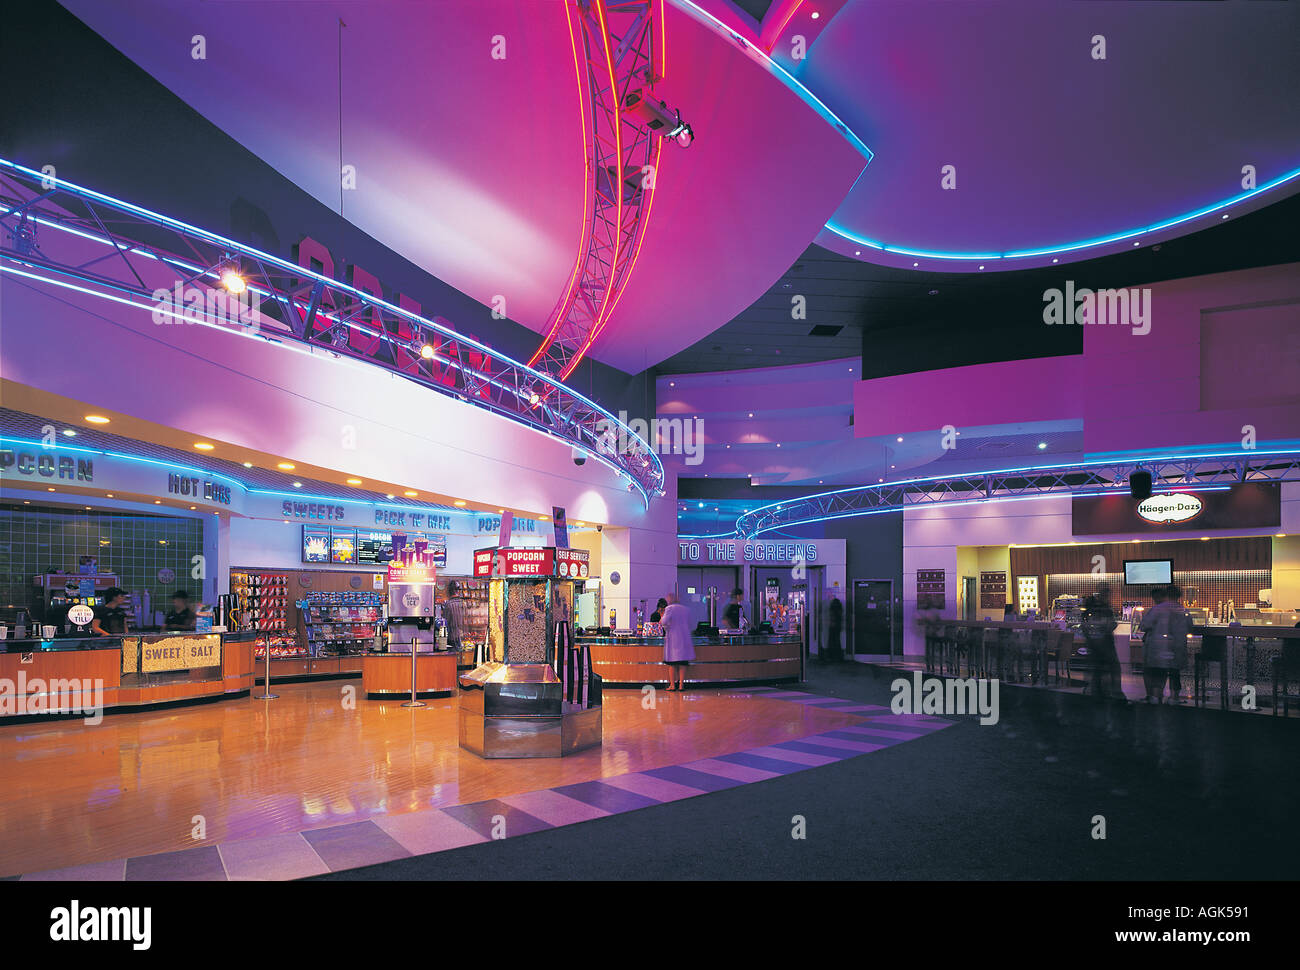 The Gate cinema Newcastle Upon Tyne UK - Stock Image